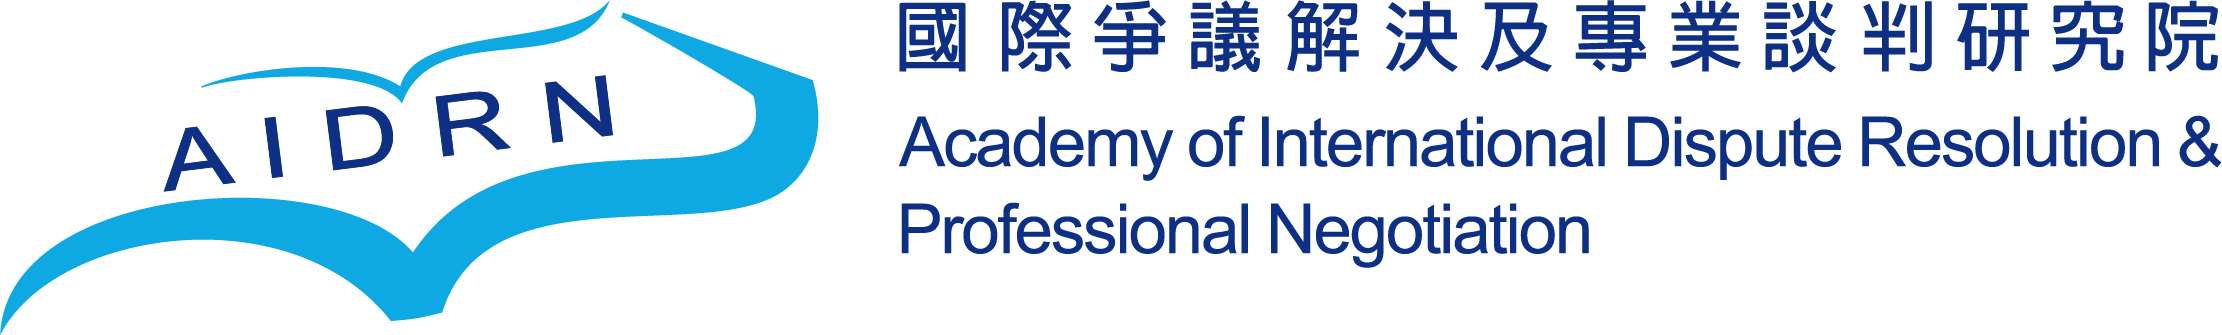 Academy of International Dispute Resolution & Professional Negotiation